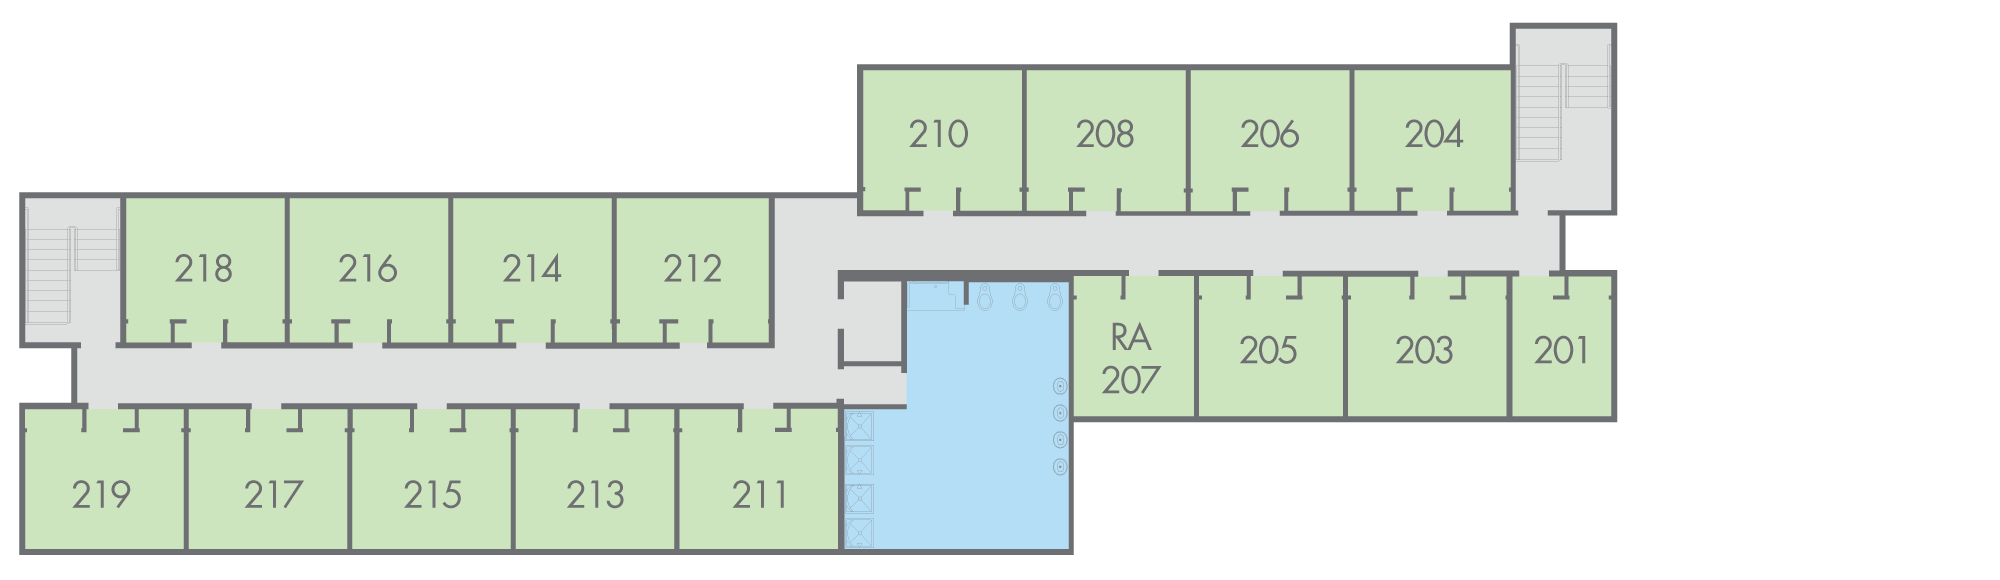 Floor Plan: Regan Hall, Campbo Building, Second Floor